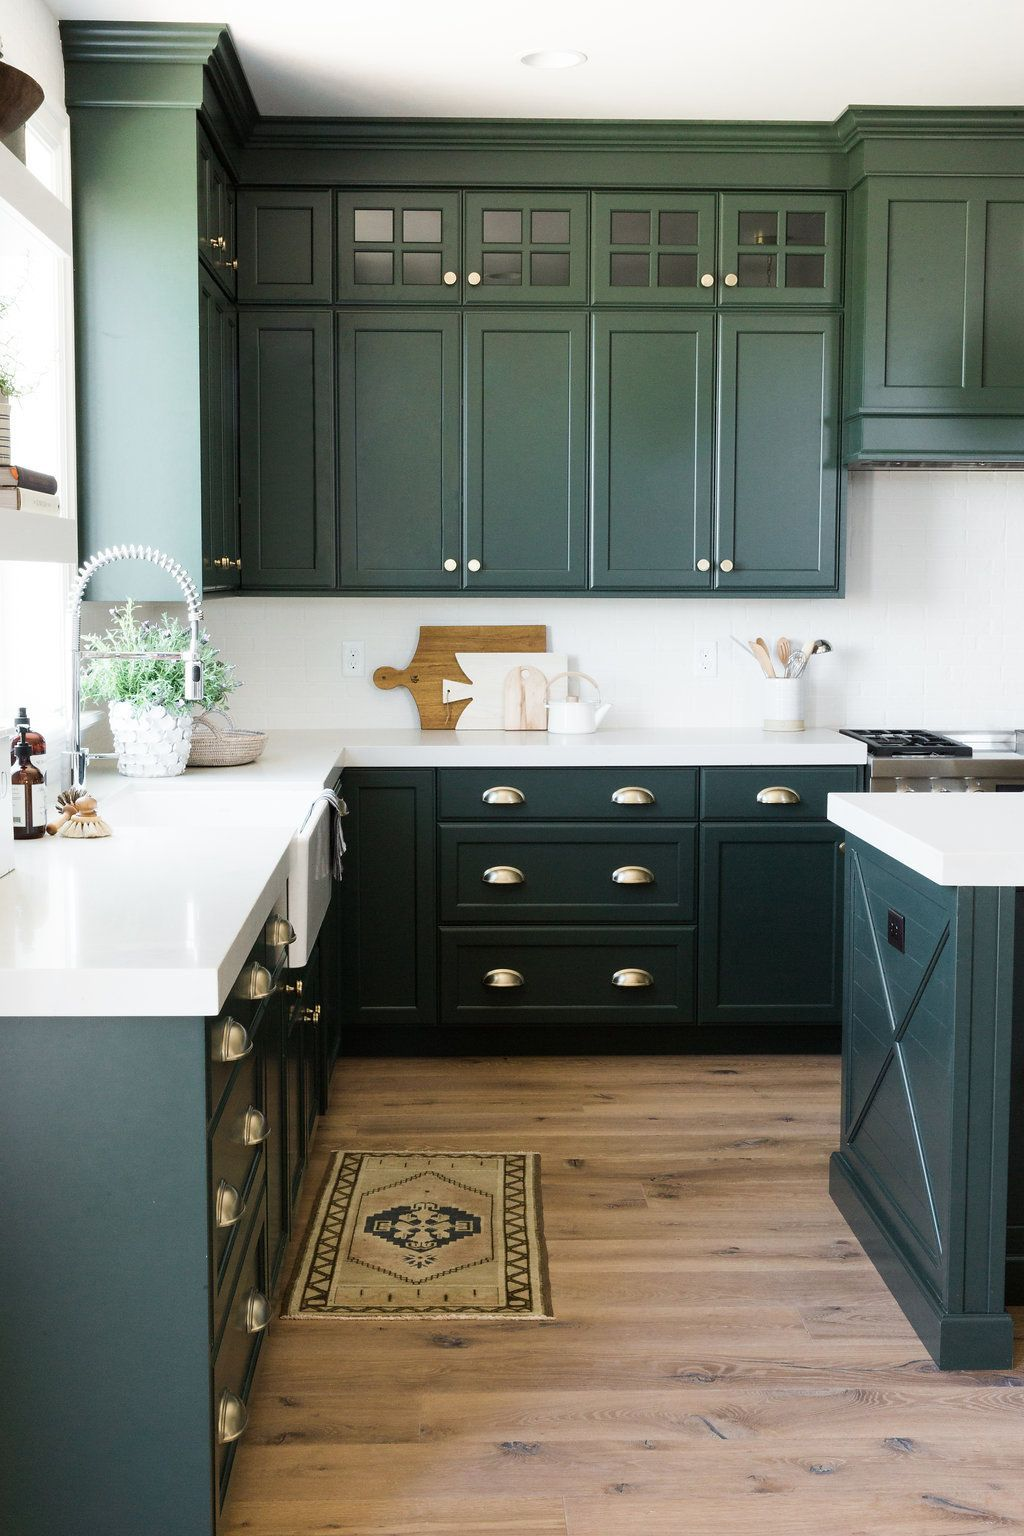 Cabinet Doors Drawers And Also Refinishing Storage Space Rooms